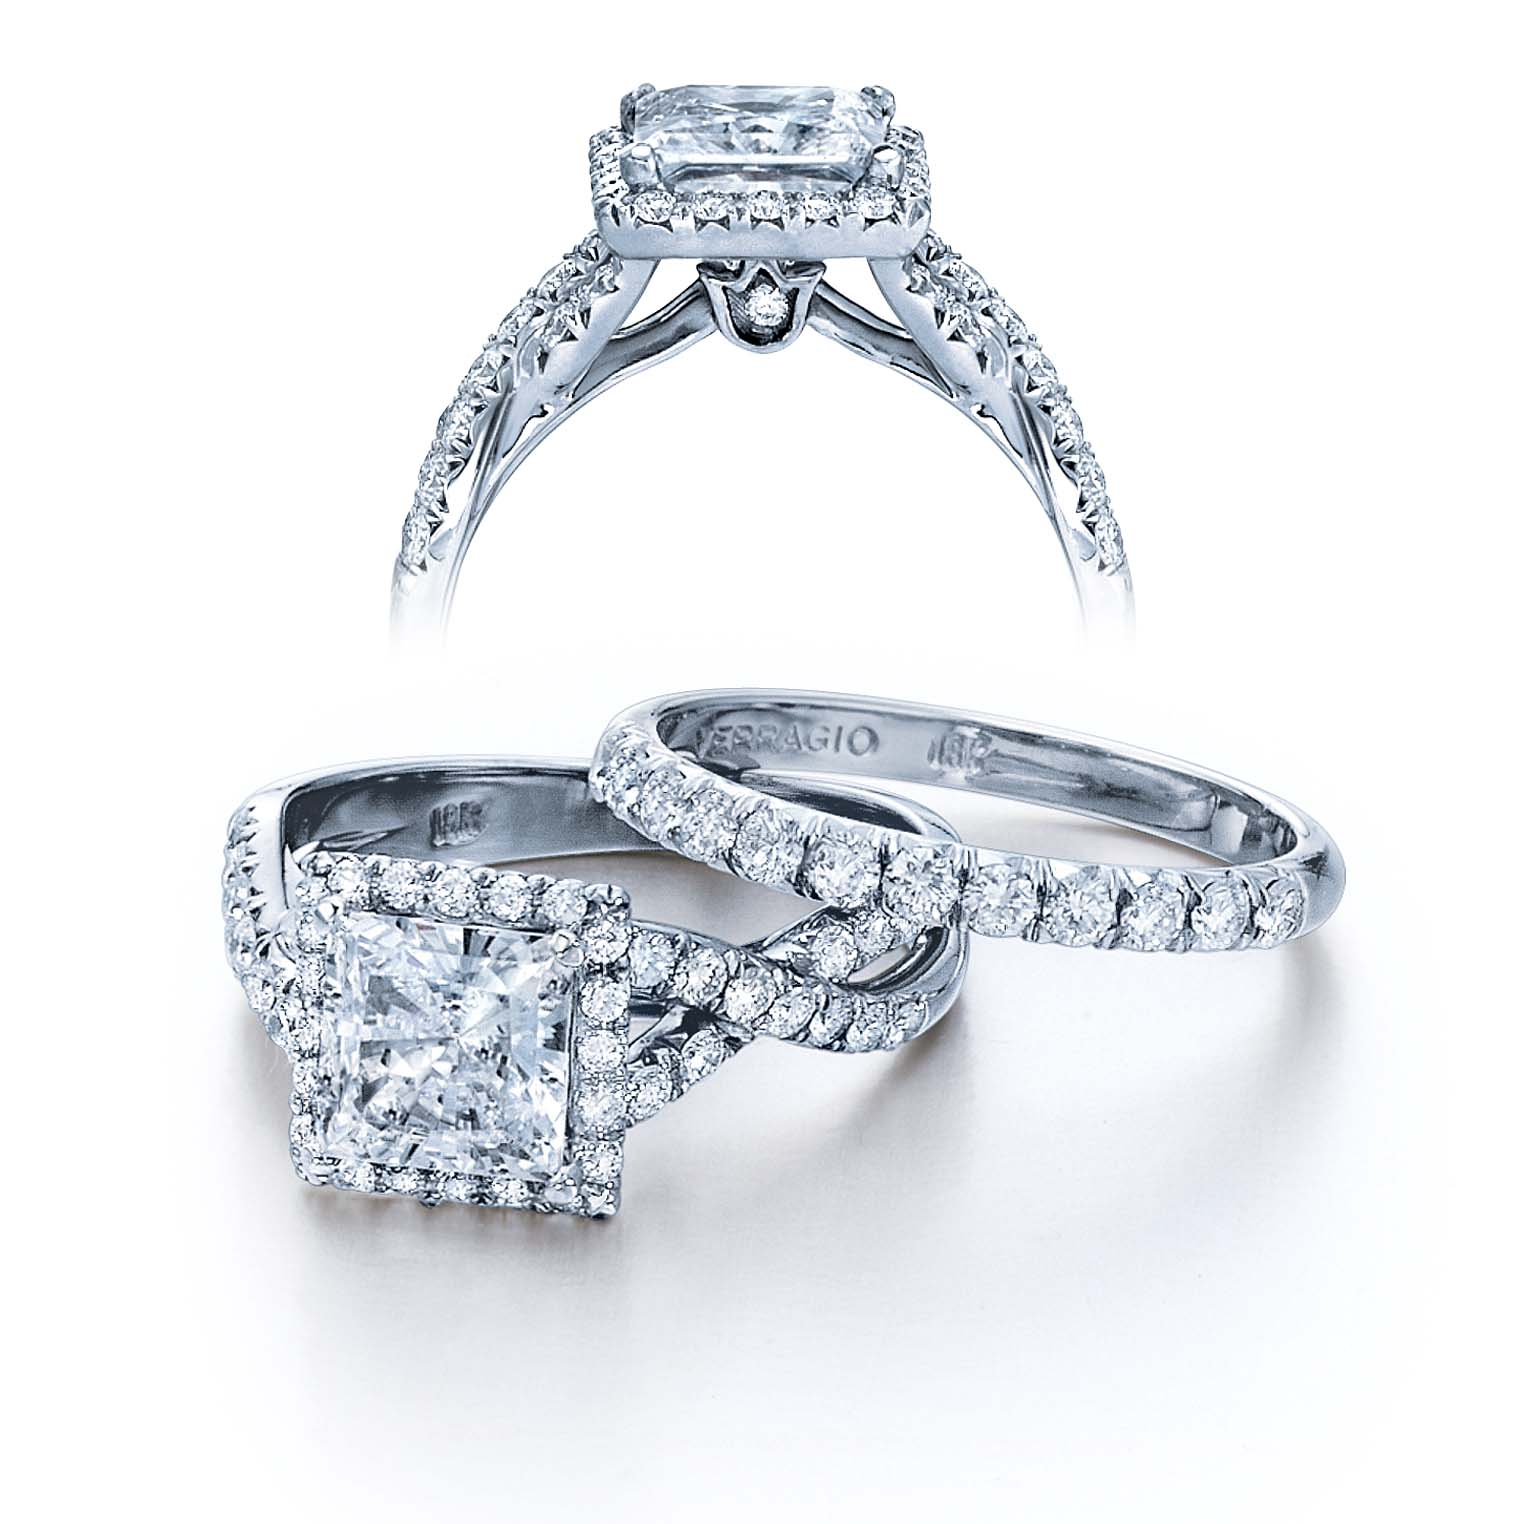 Verragio To Be The First Engagement Ring And Wedding Band